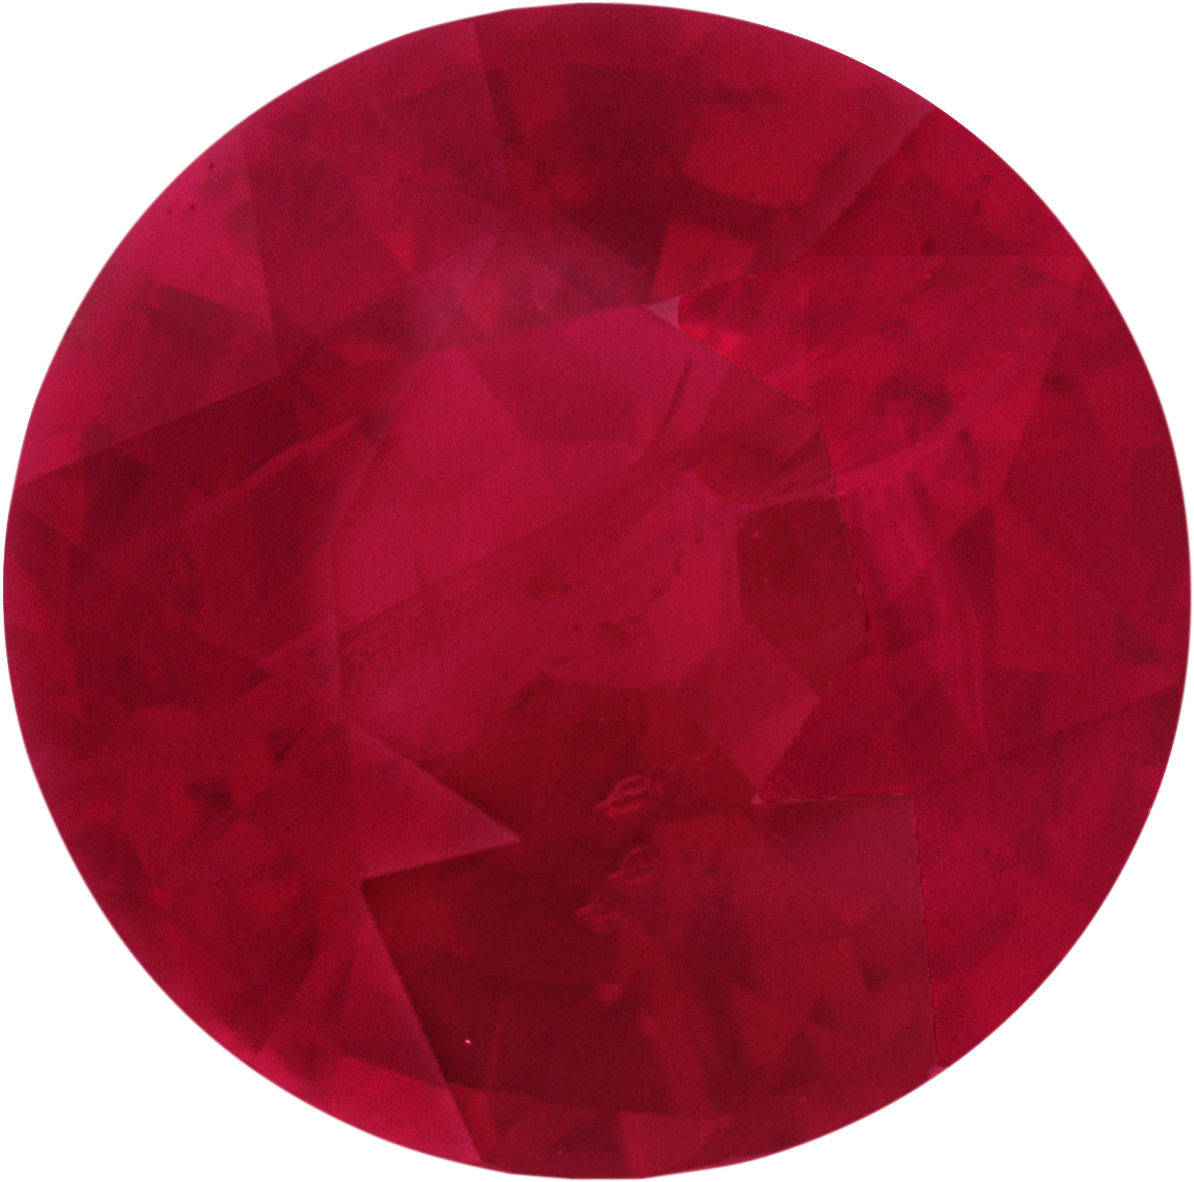 6.13 mm, Ruby Loose Gemstone in Round Cut, 1.1 carats